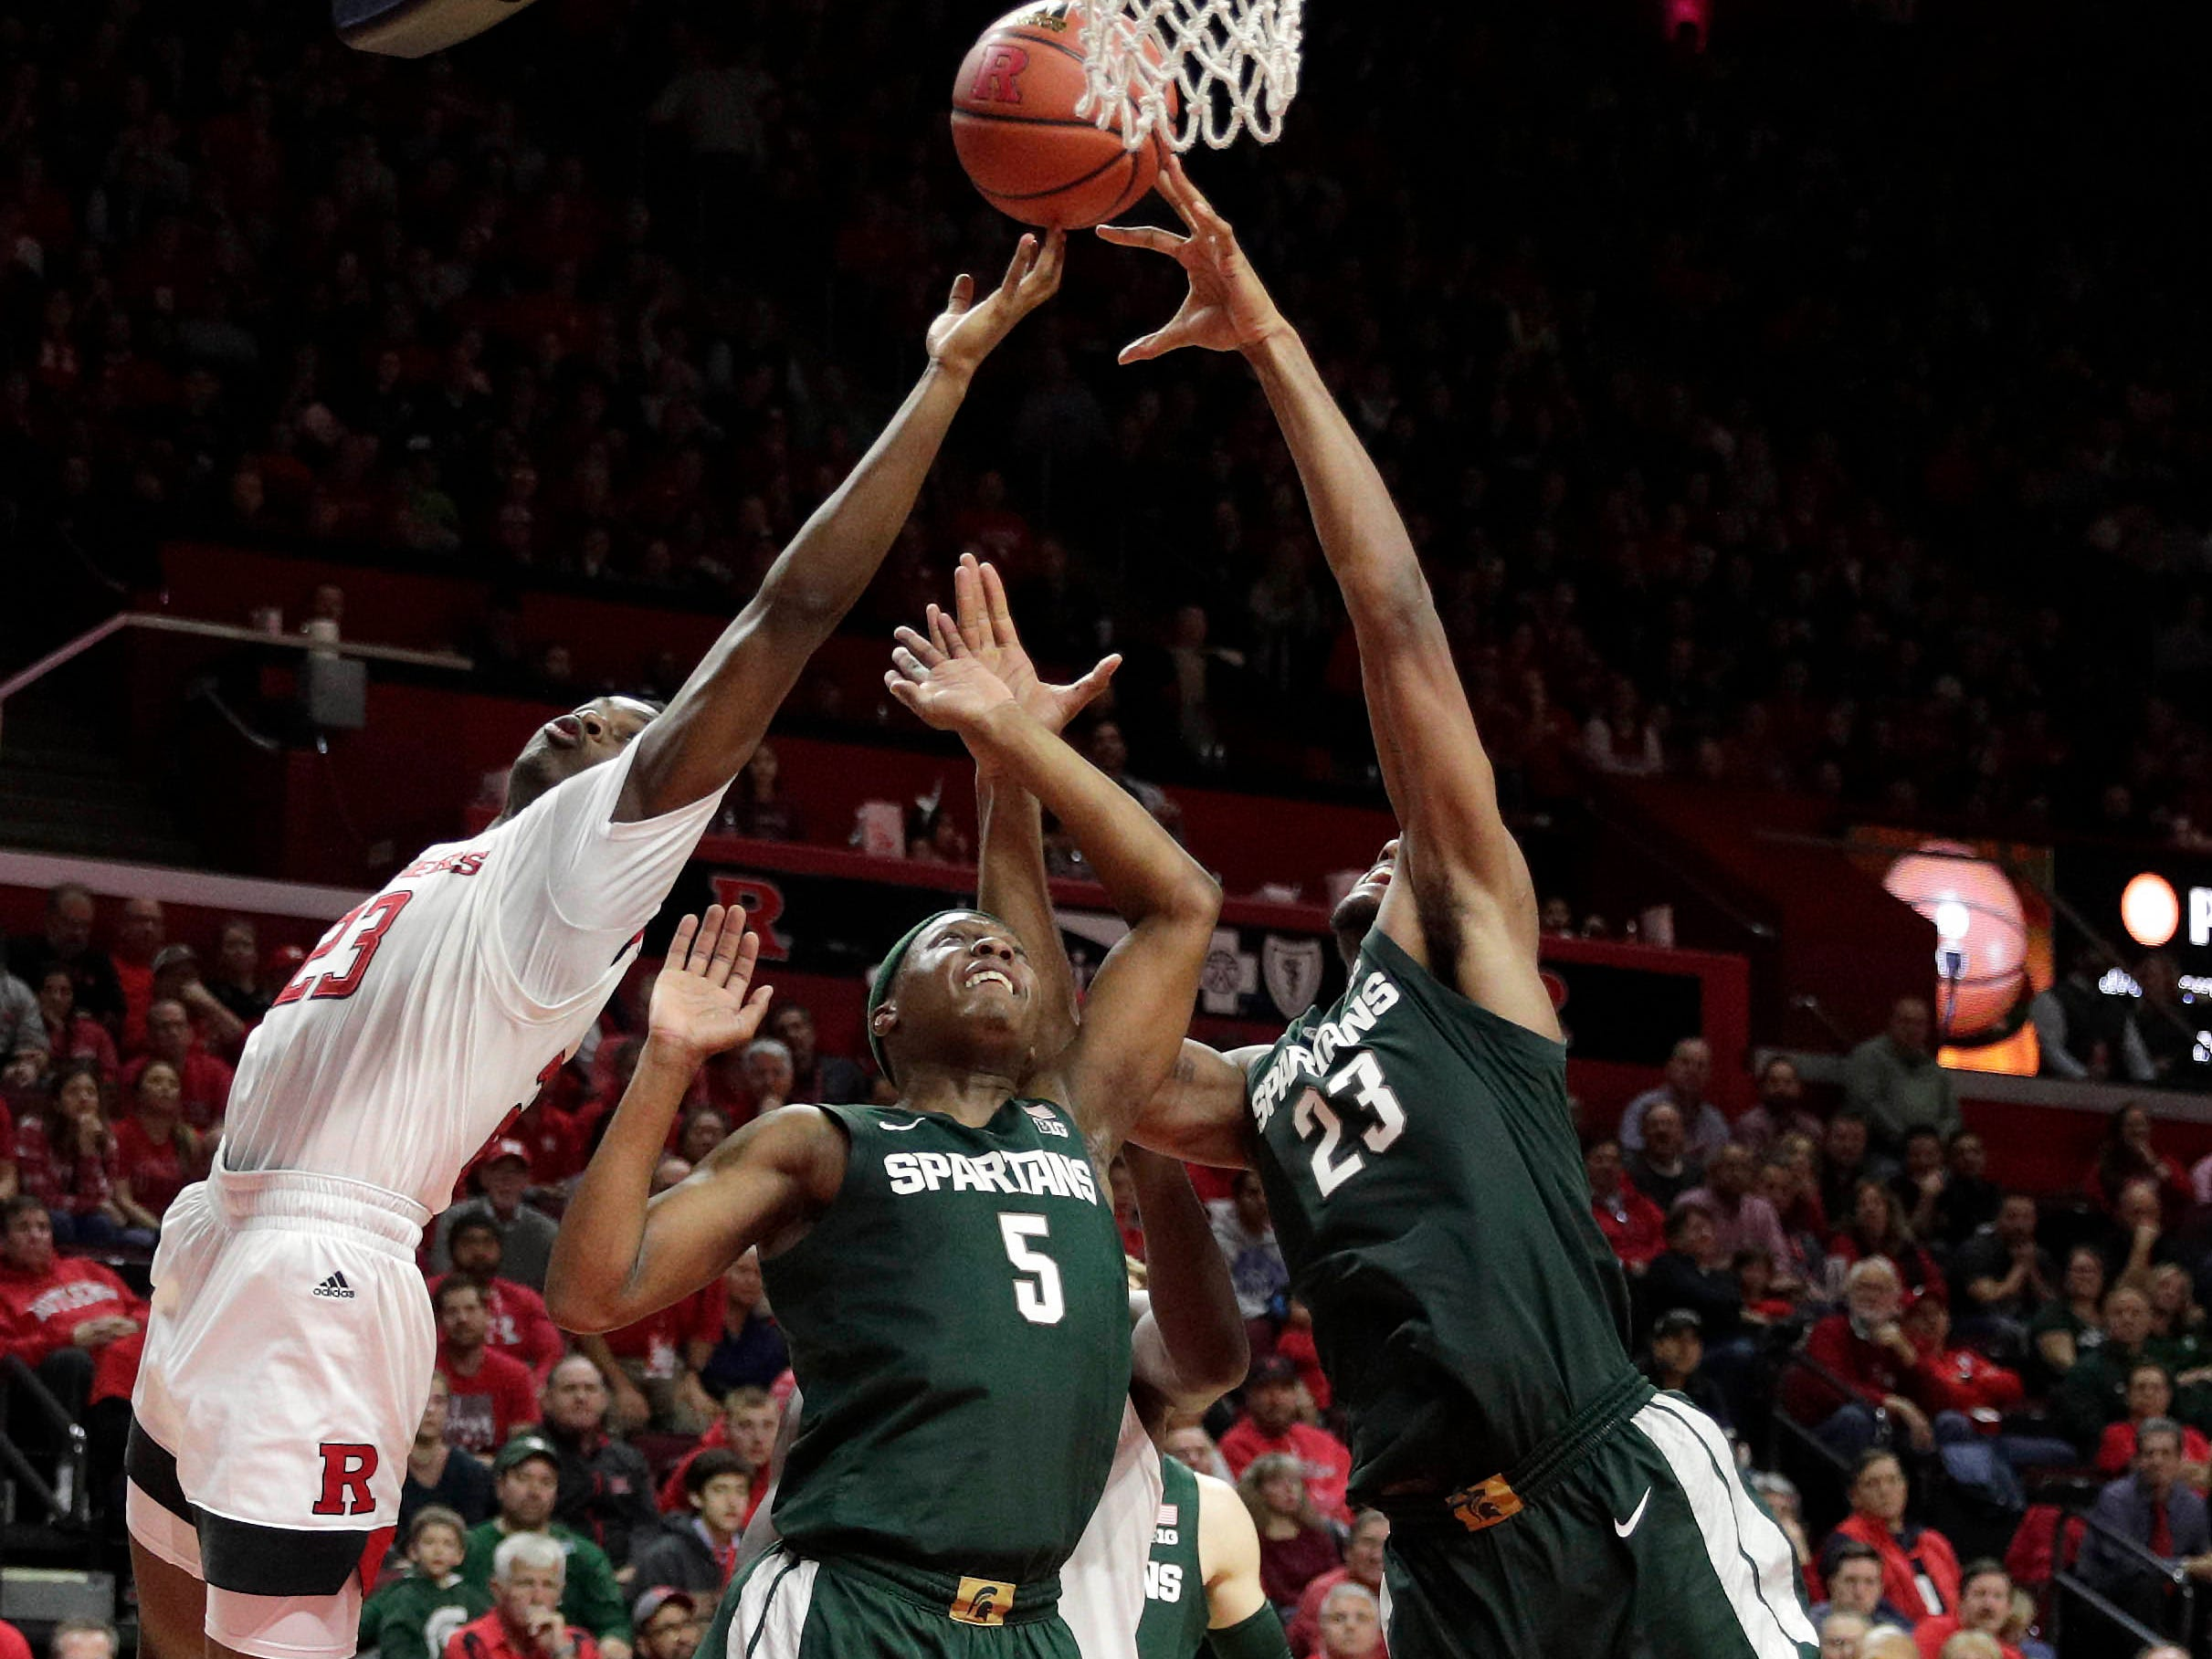 Rutgers Scarlet Knights guard Montez Mathis (23) rebounds against Michigan State Spartans guard Cassius Winston (5) and forward Xavier Tillman (23) during the second half at Rutgers Athletic Center (RAC).